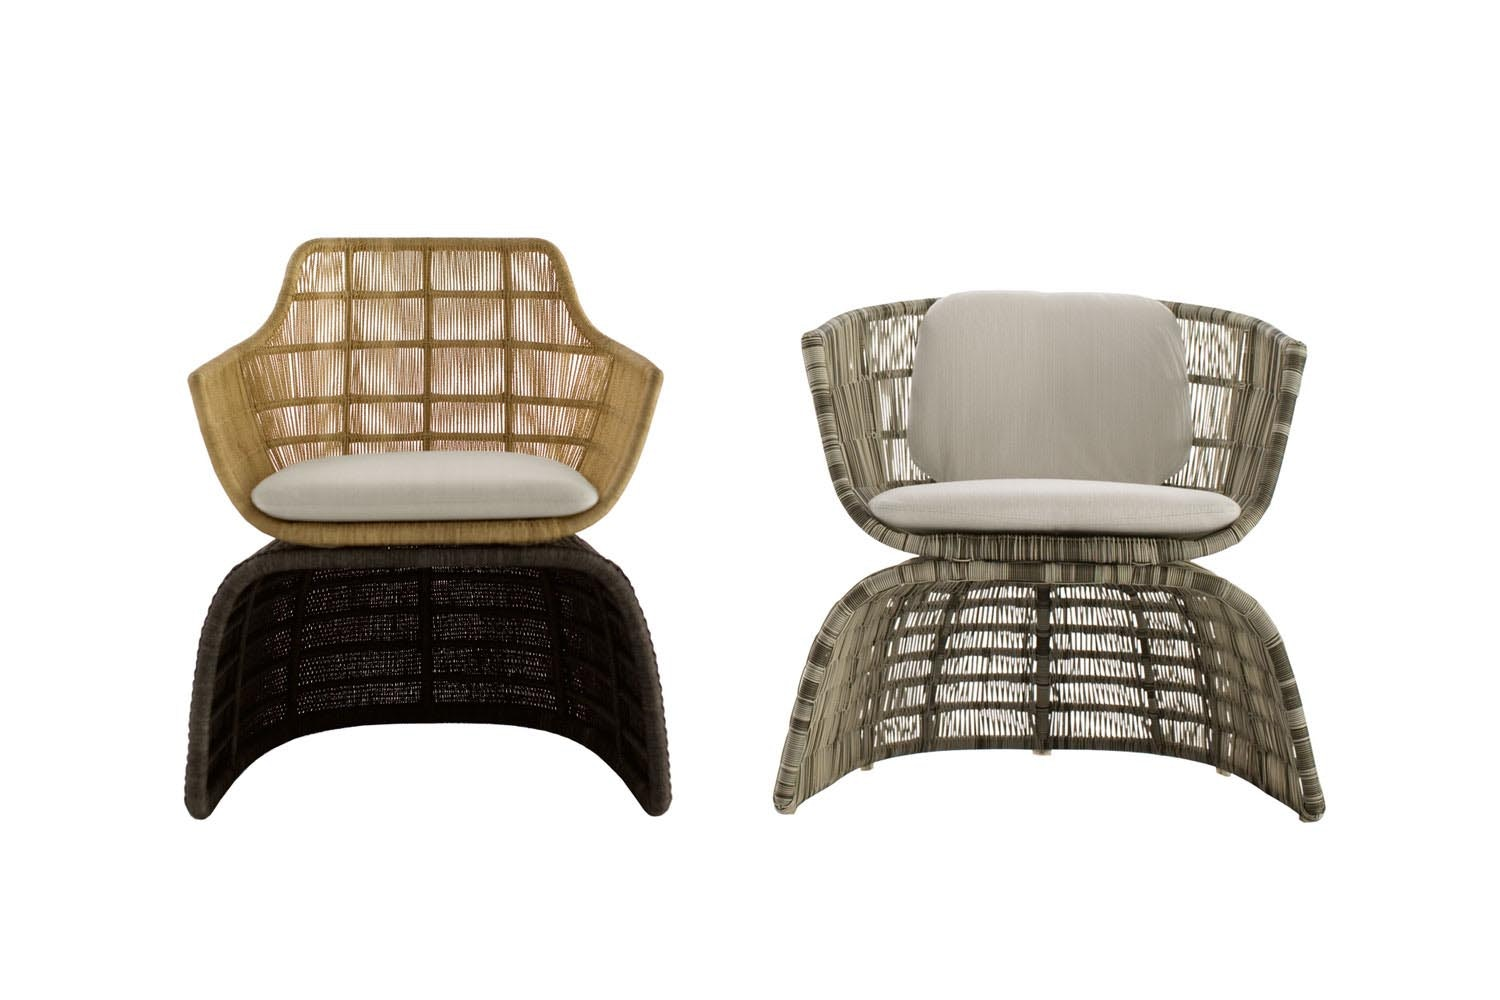 Crinoline Armchair by Patricia Urquiola for B&B Italia